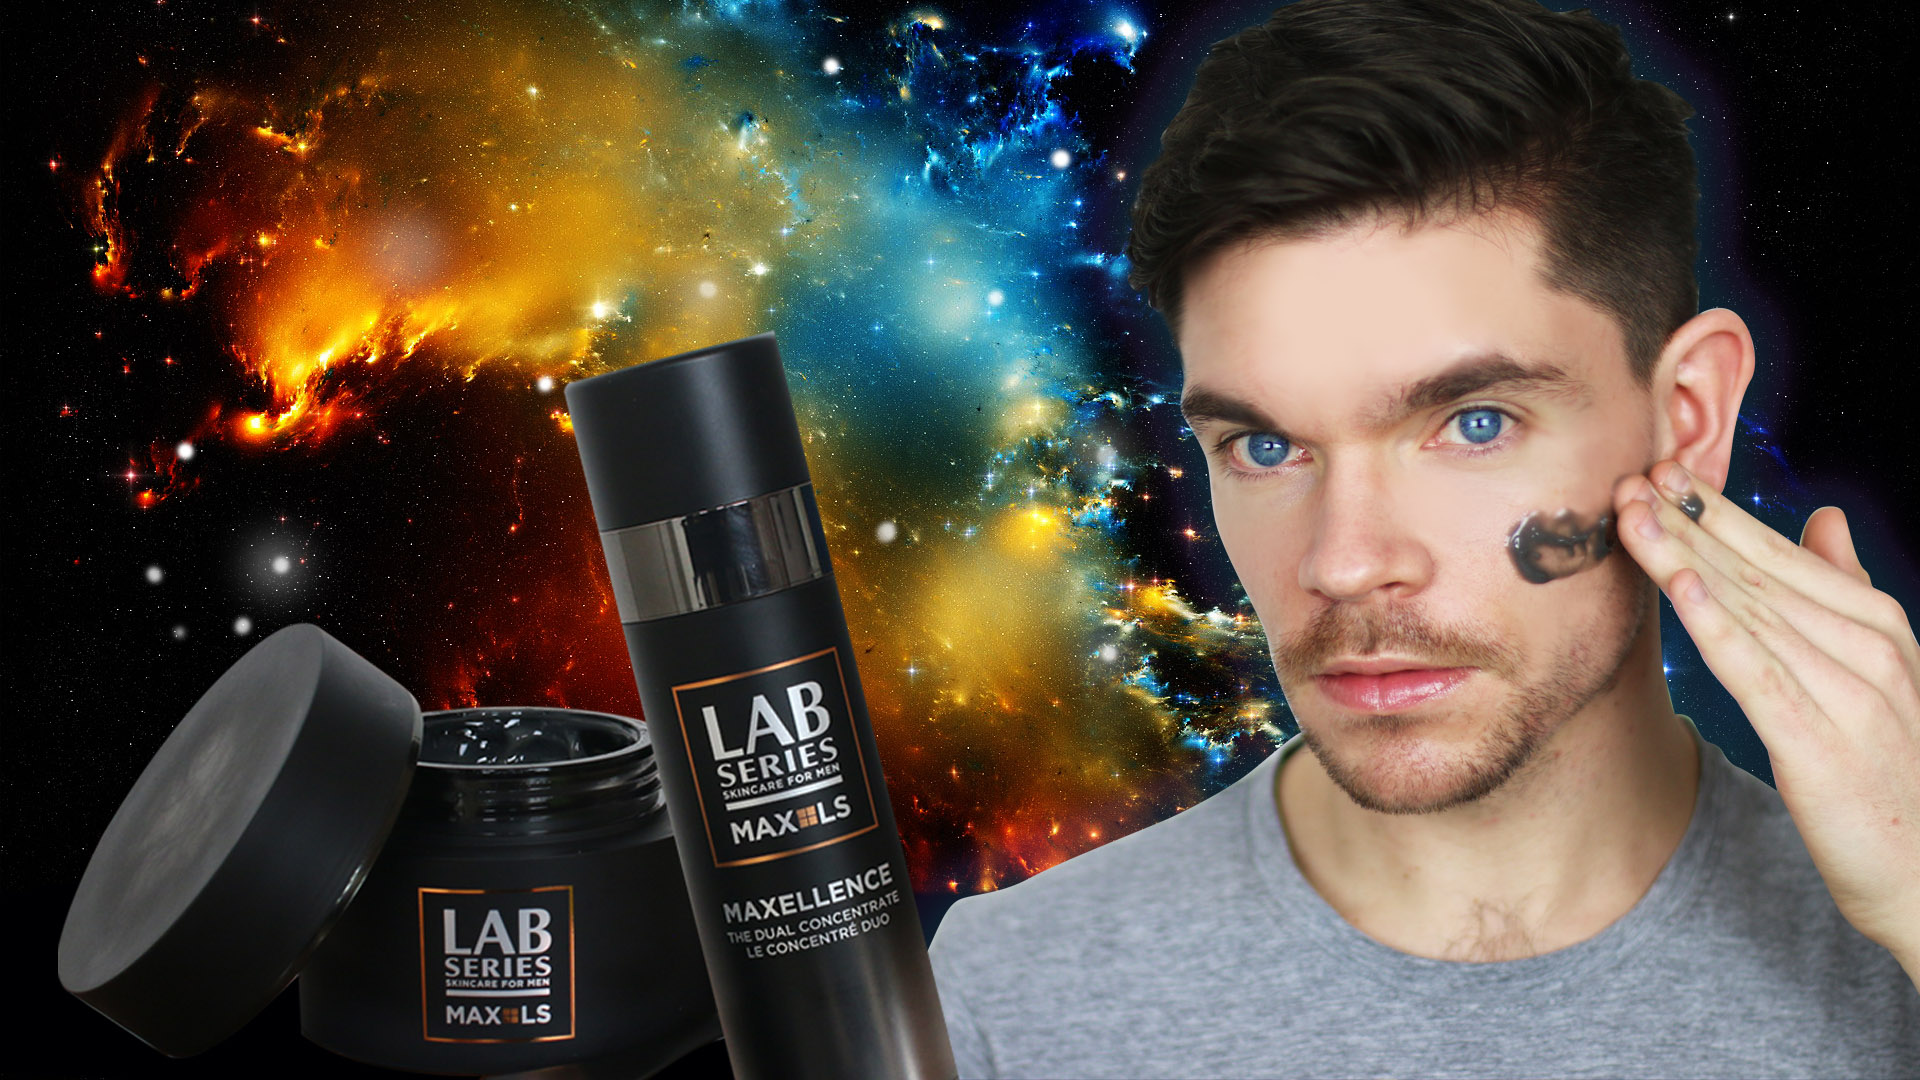 lab-series-maxellence-meteorite-moisturiser-man-for-himself